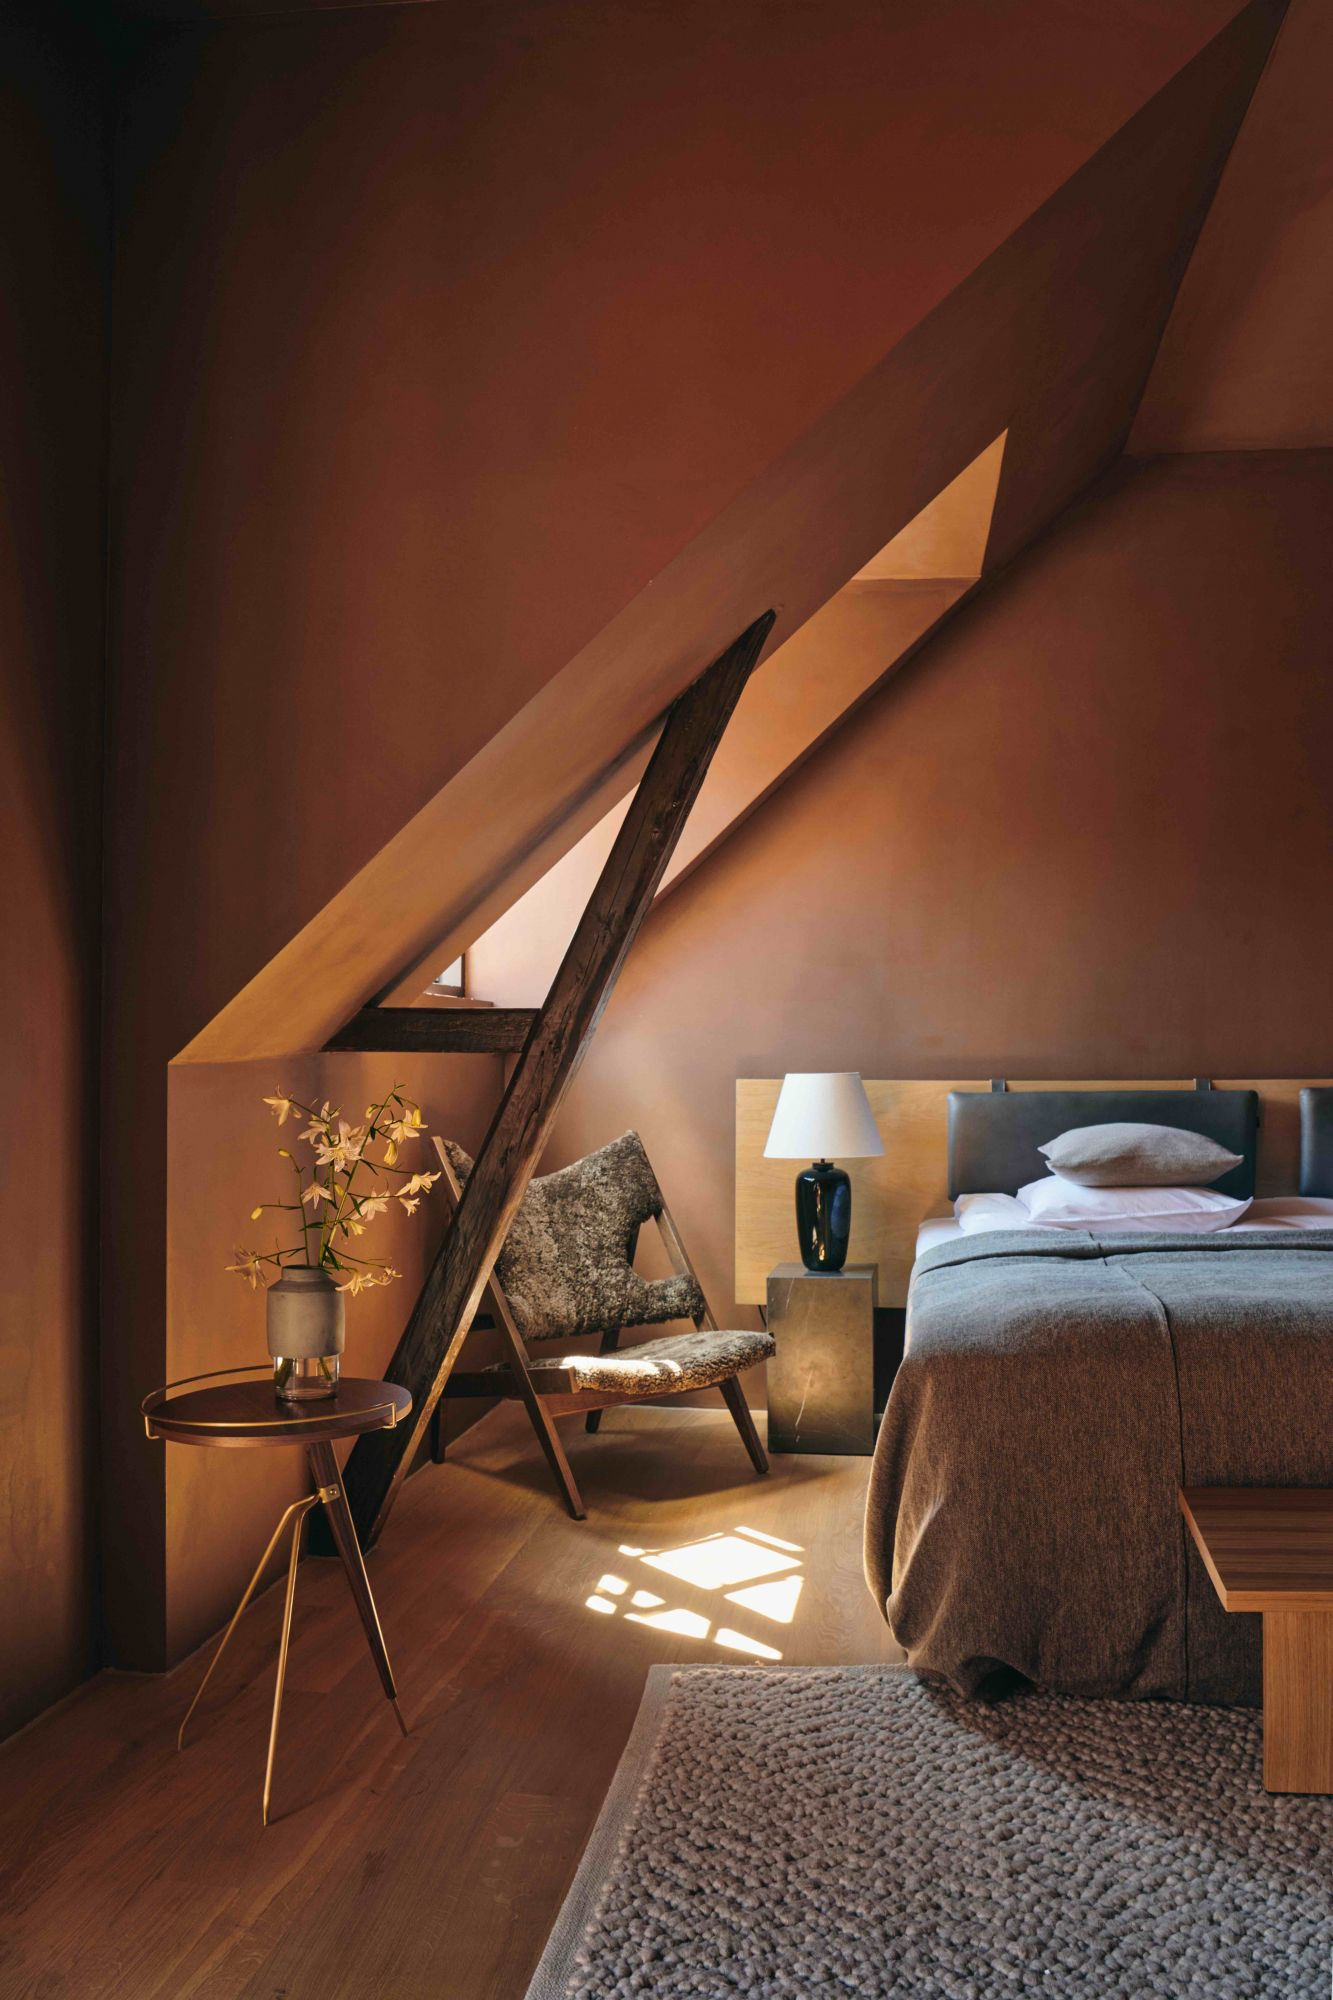 How to Include Rustic, Cottagecore Elements in Your Bedroom